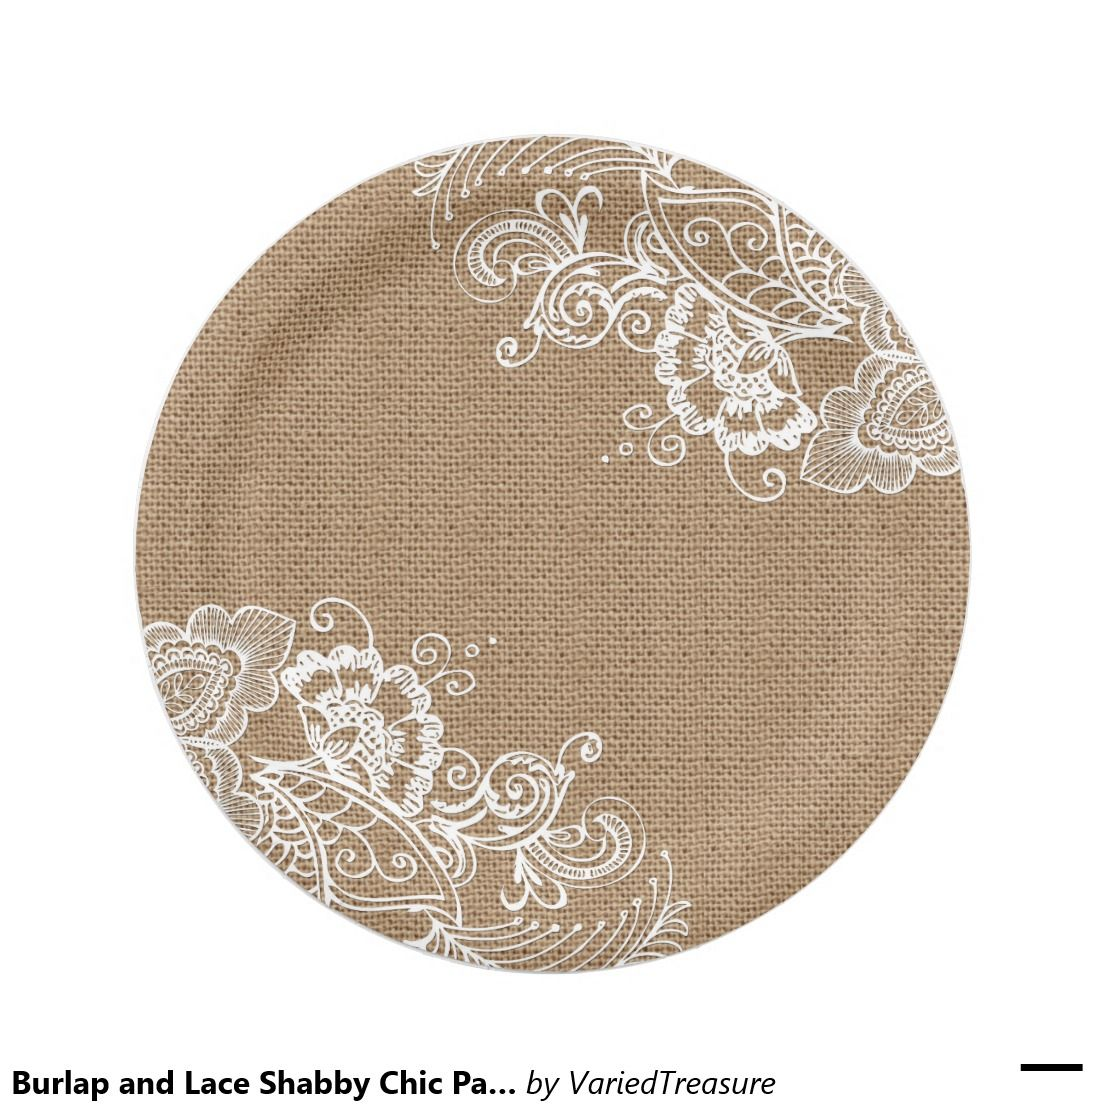 Burlap and Lace Shabby Chic Paper Plates | Burlap, Shabby and 30th